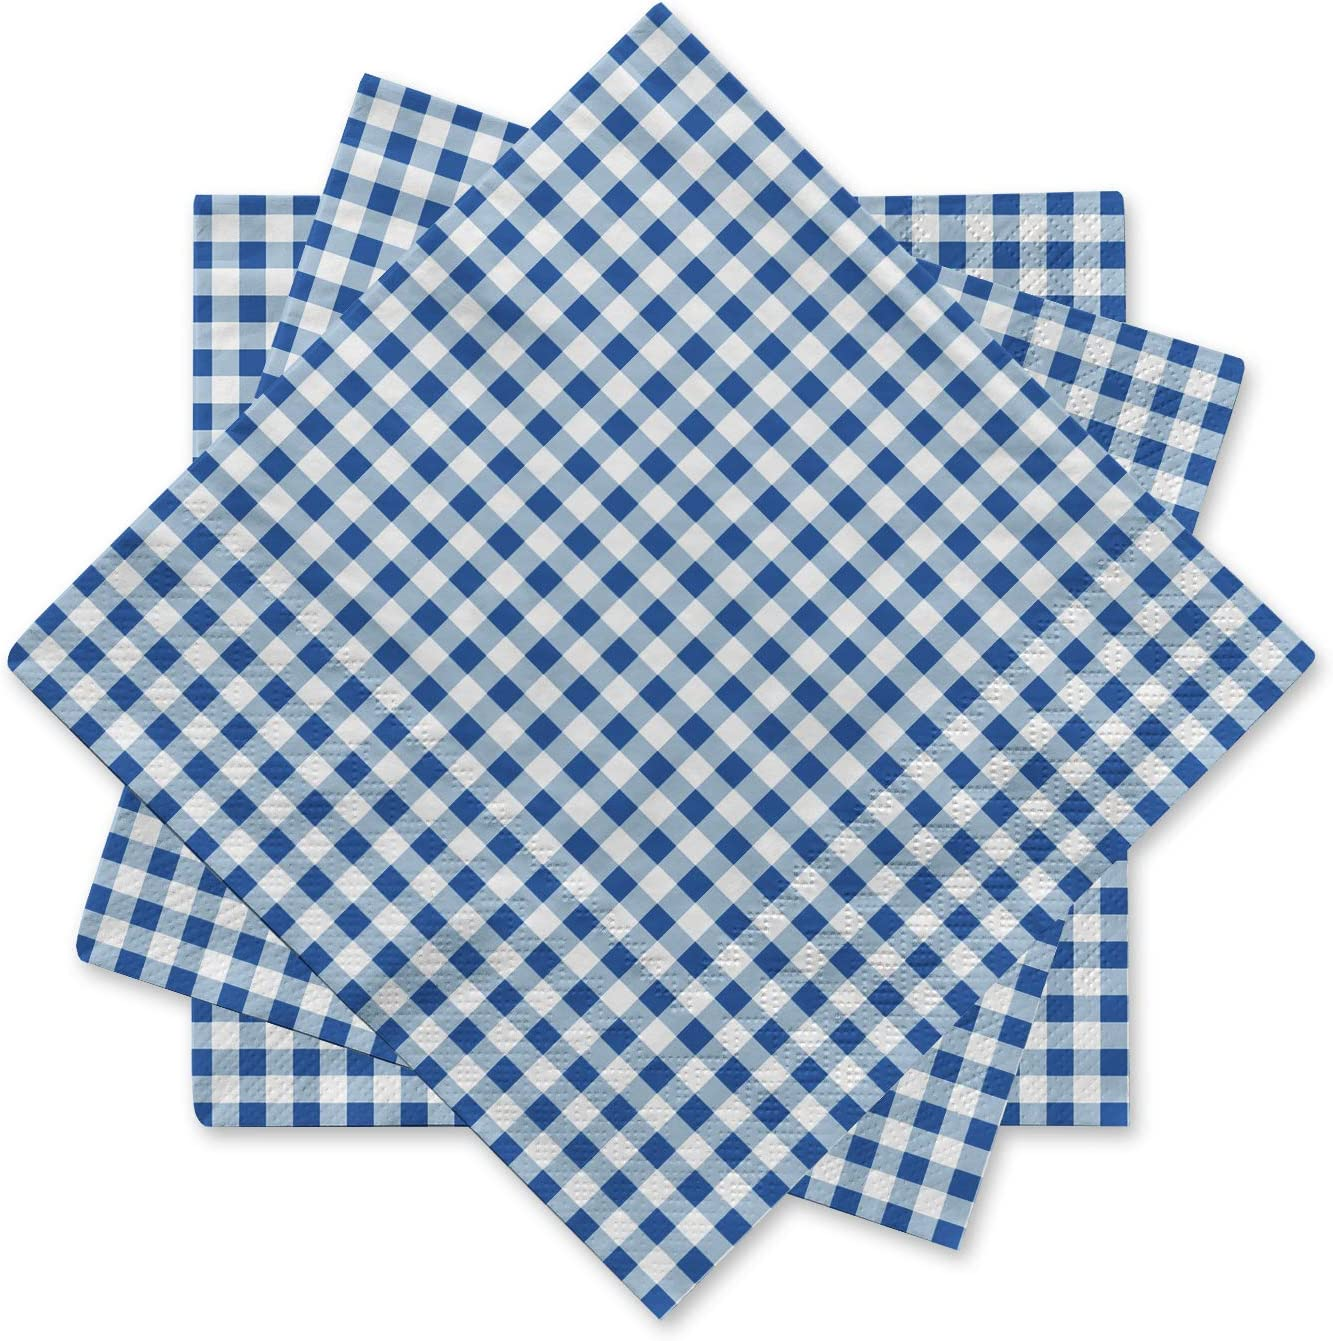 13X21 Smaller Laps Red and White Gingham Red White Checkered Napkins Thin Fabric Set of 4 Cloth Picnic Napkins